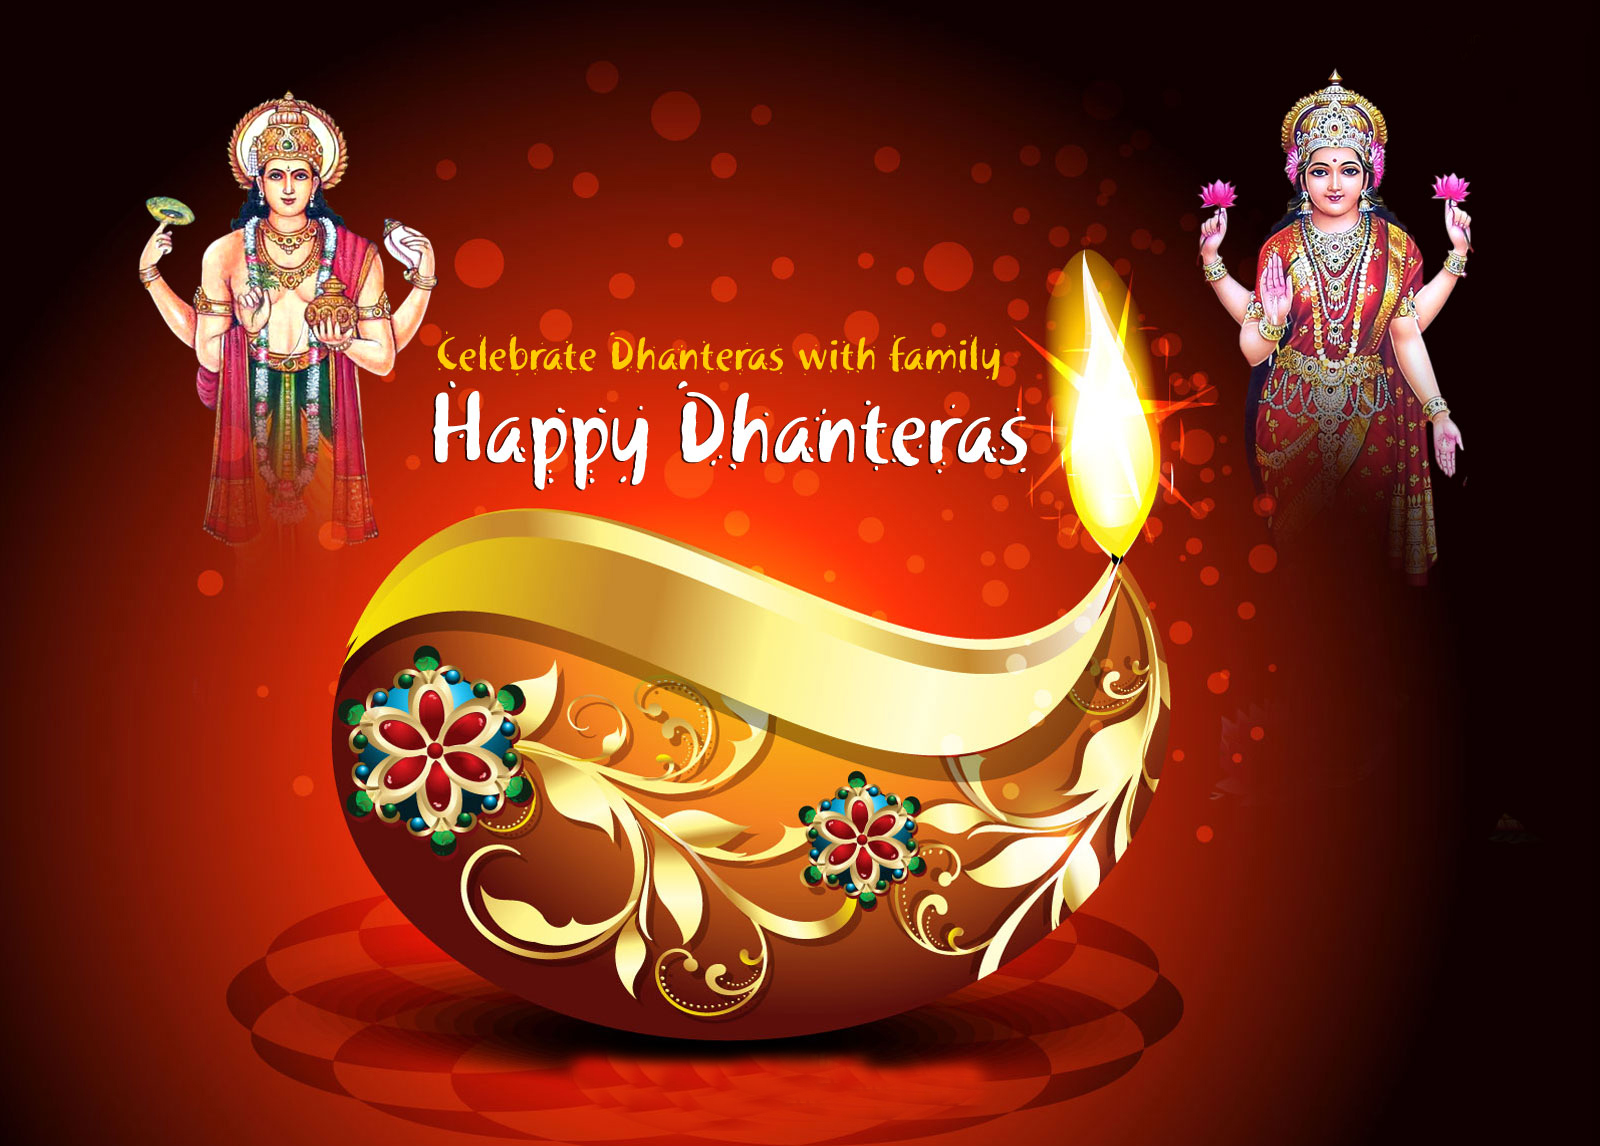 Happy Dhanteras 2018 Image